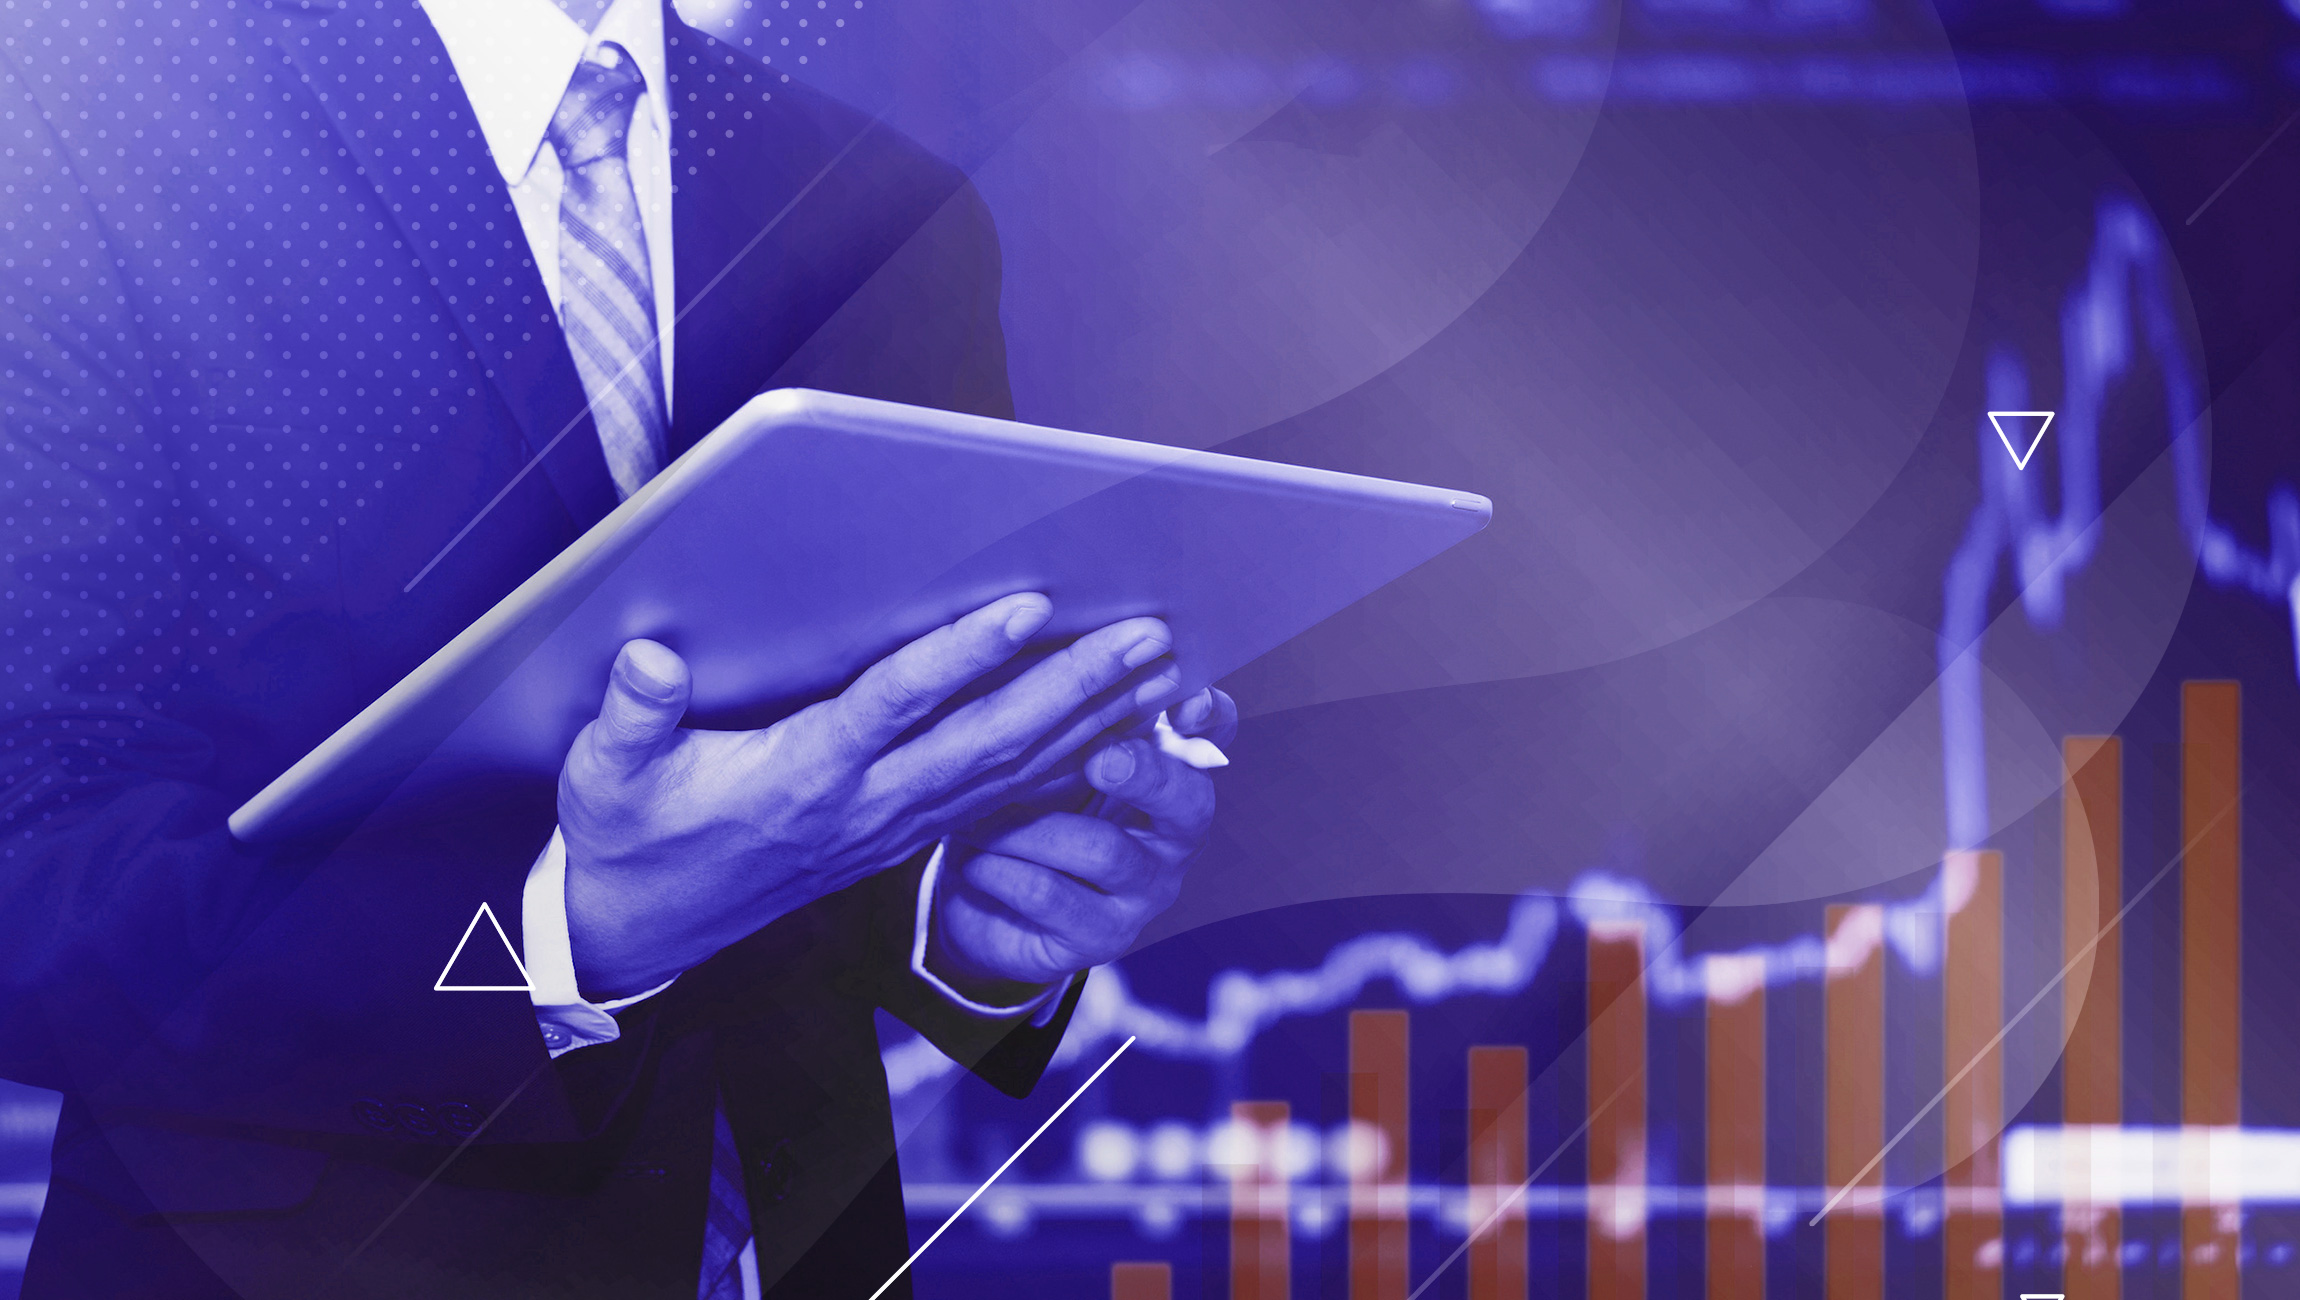 The 6 Questions You Should Be Asking Your Marketing Analytics Vendor